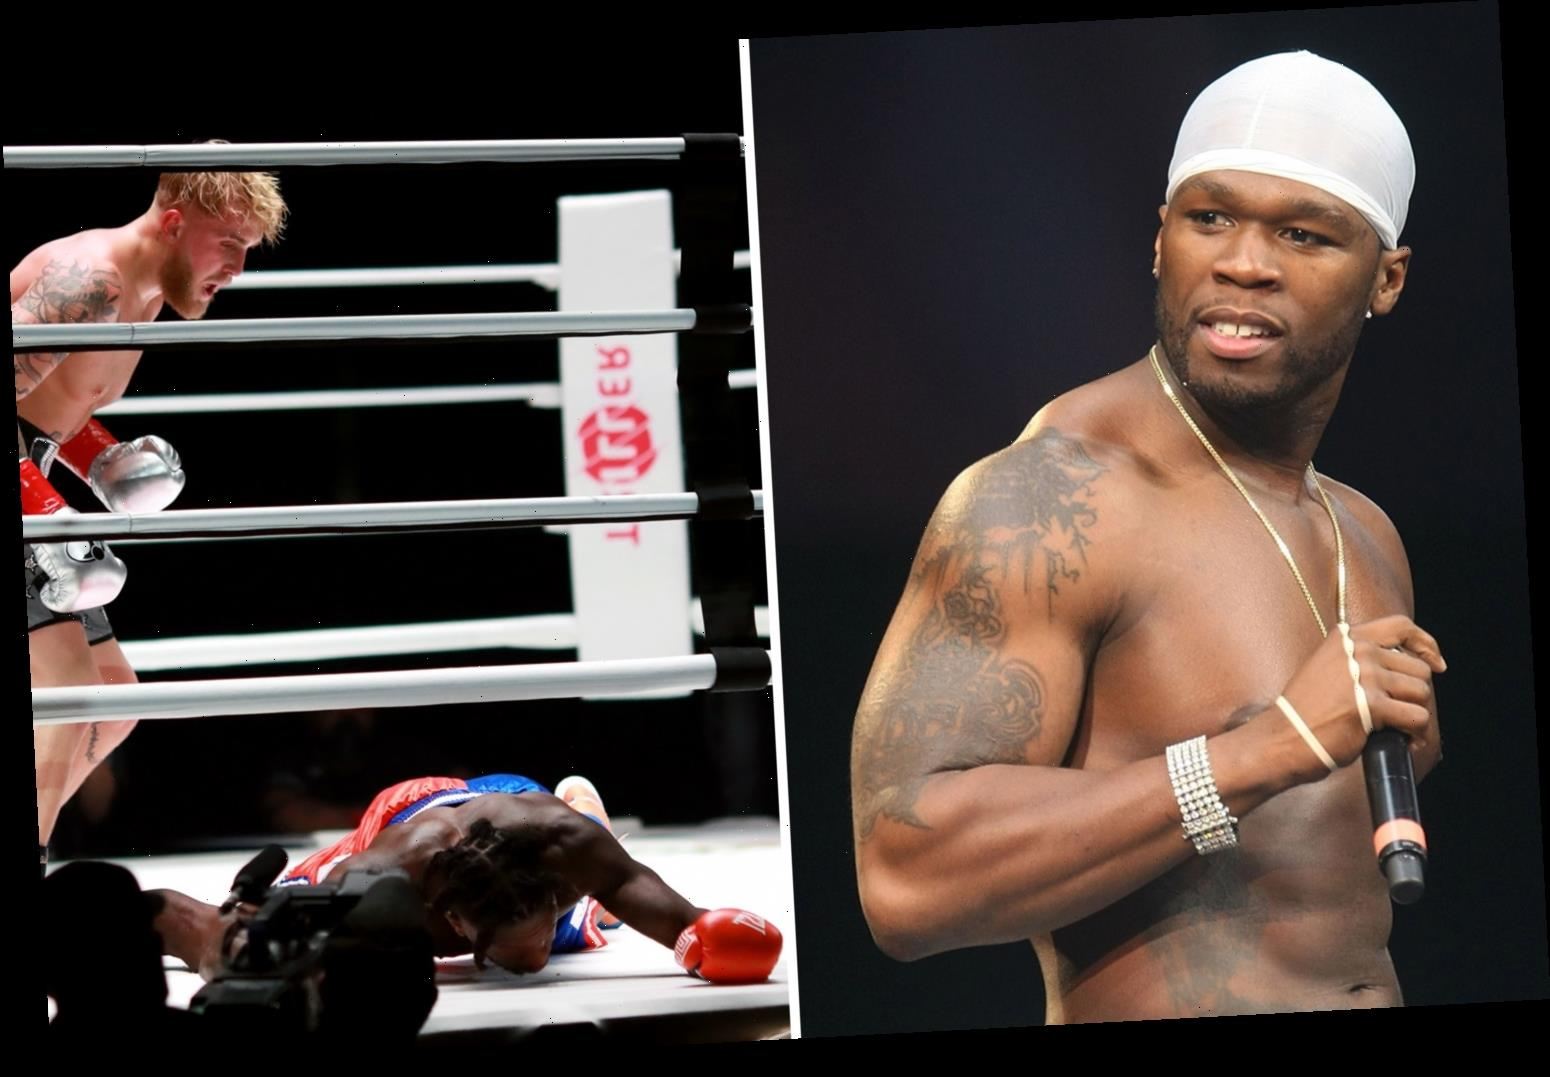 50 Cent trolls Nate Robinson over Jake Paul KO on Mike Tyson undercard but Floyd Mayweather 'proud' of NBA star